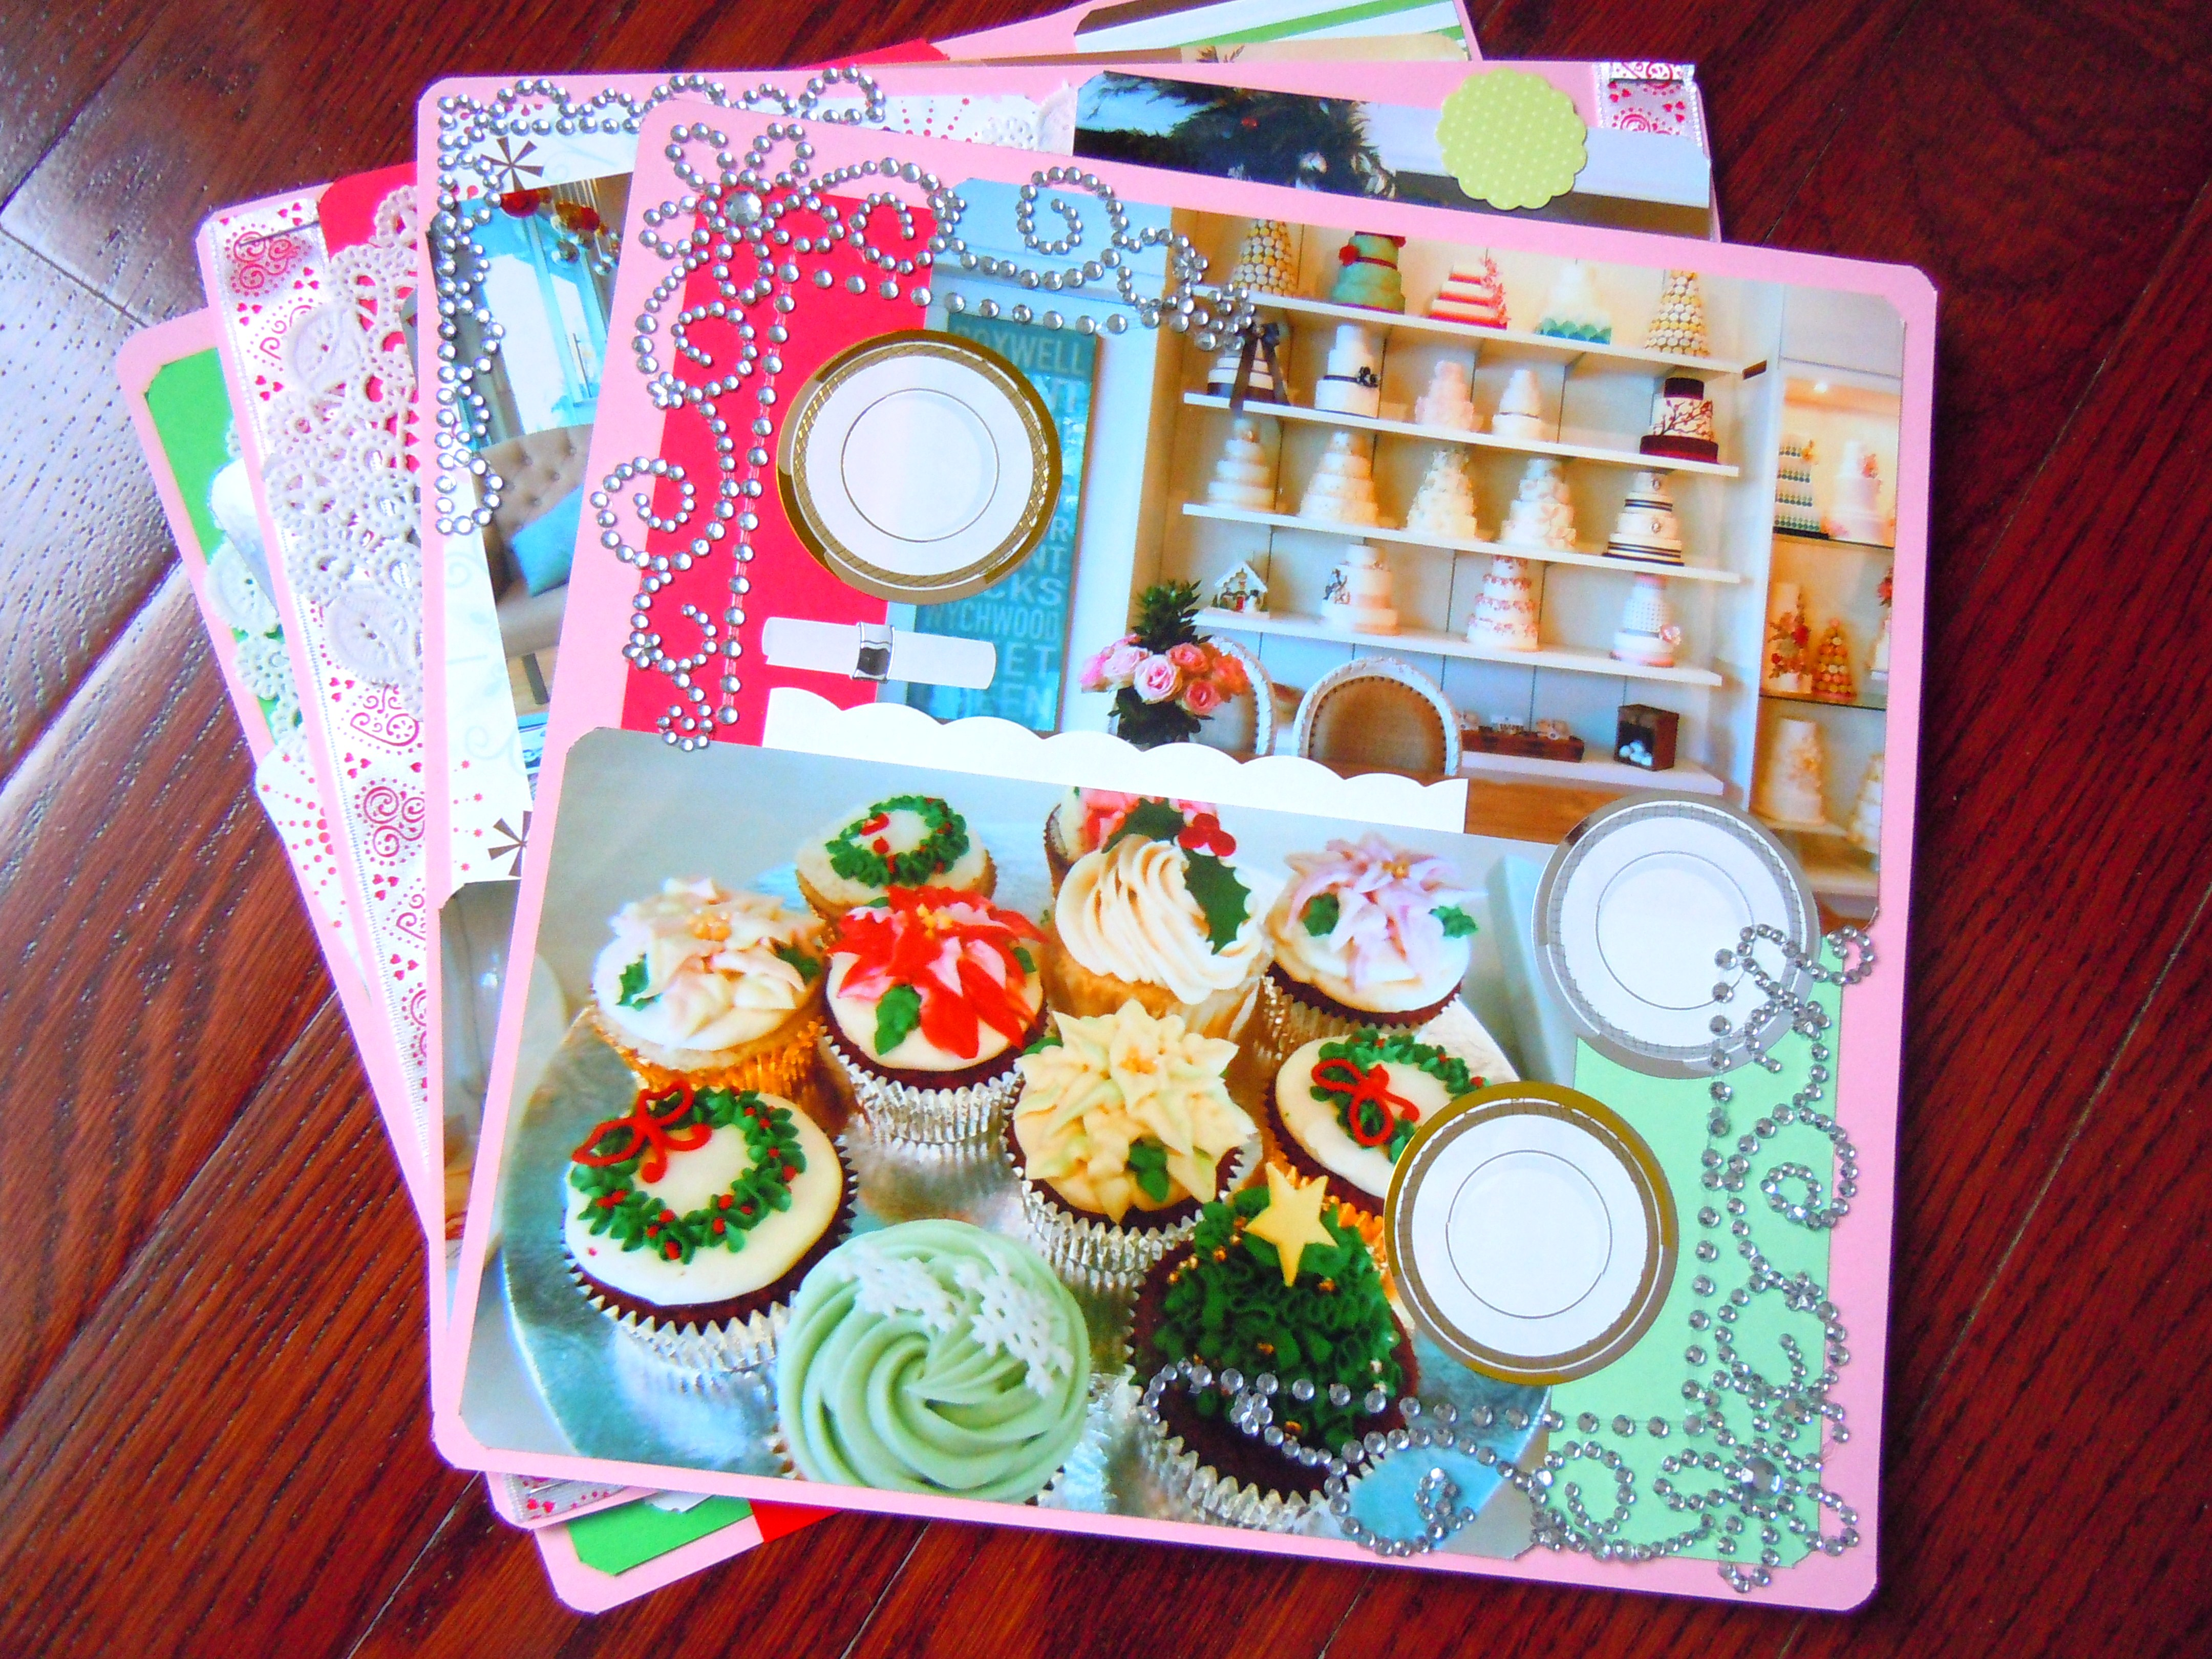 Parisian macarons and all things sweet dainty for Scrapbooking cuisine